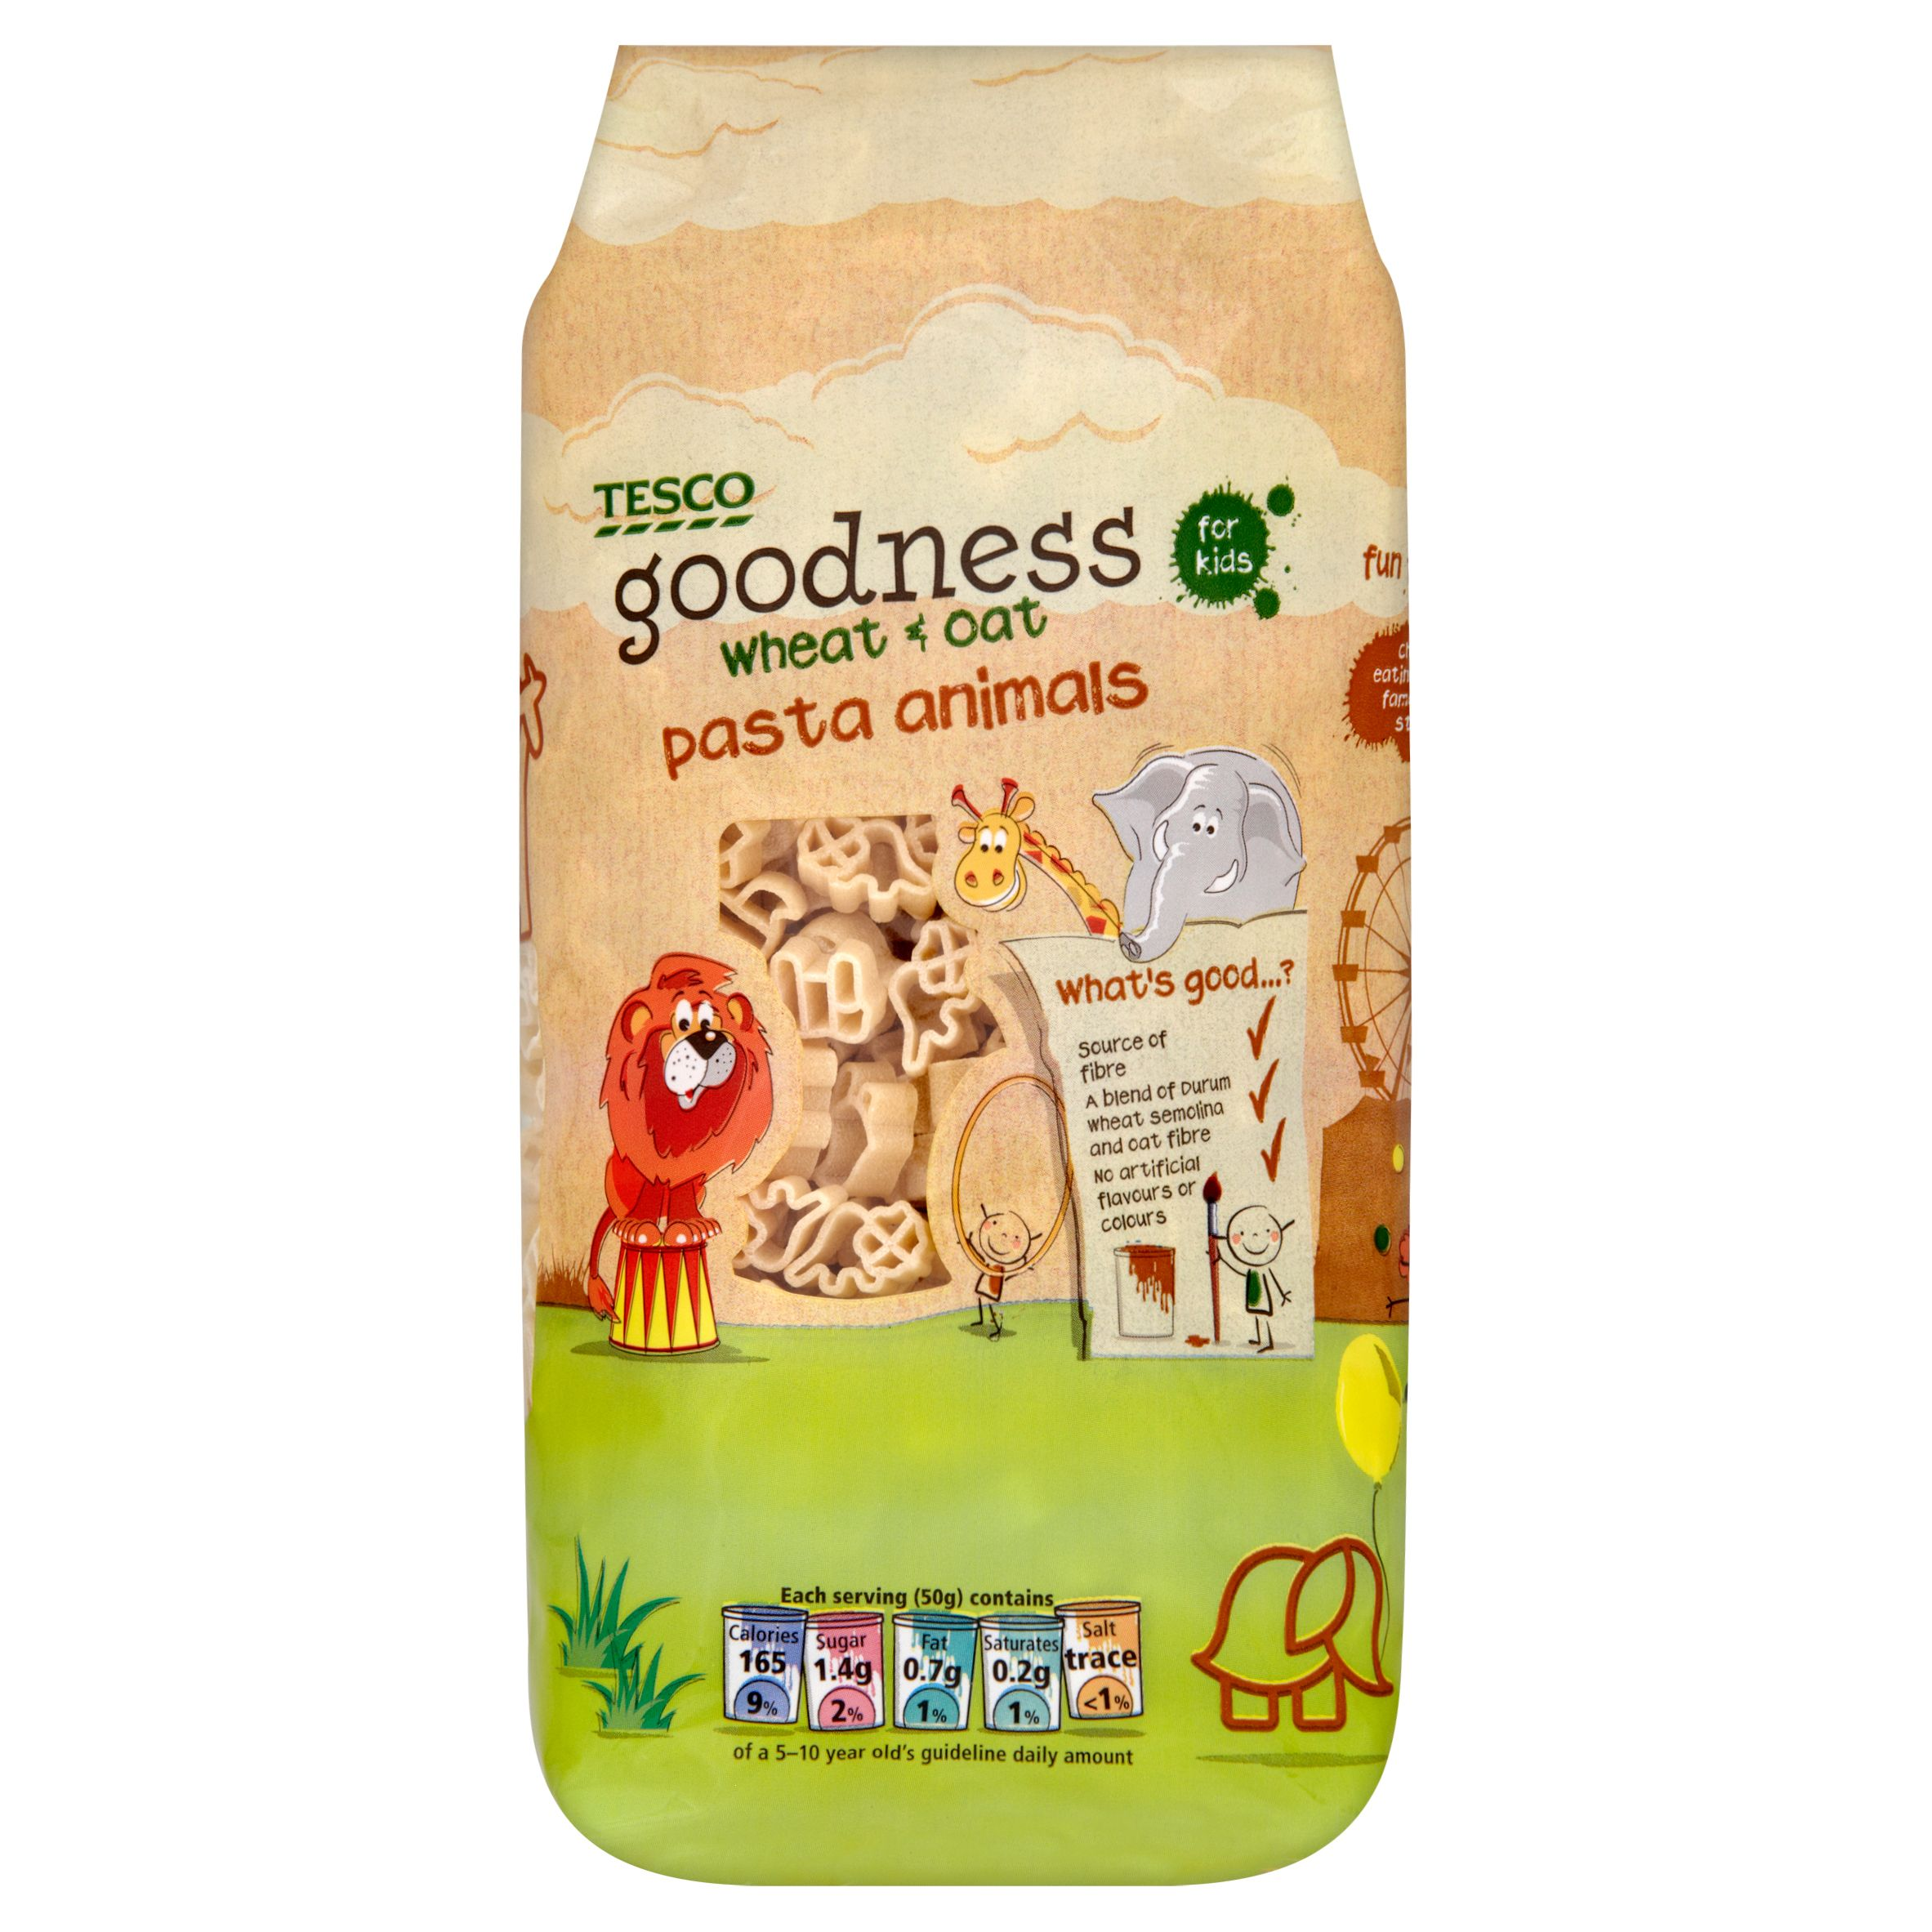 Tesco Goodness Wheat Oat Pasta Animals Good For Kids Tesco Groceries Drying Pasta Tesco